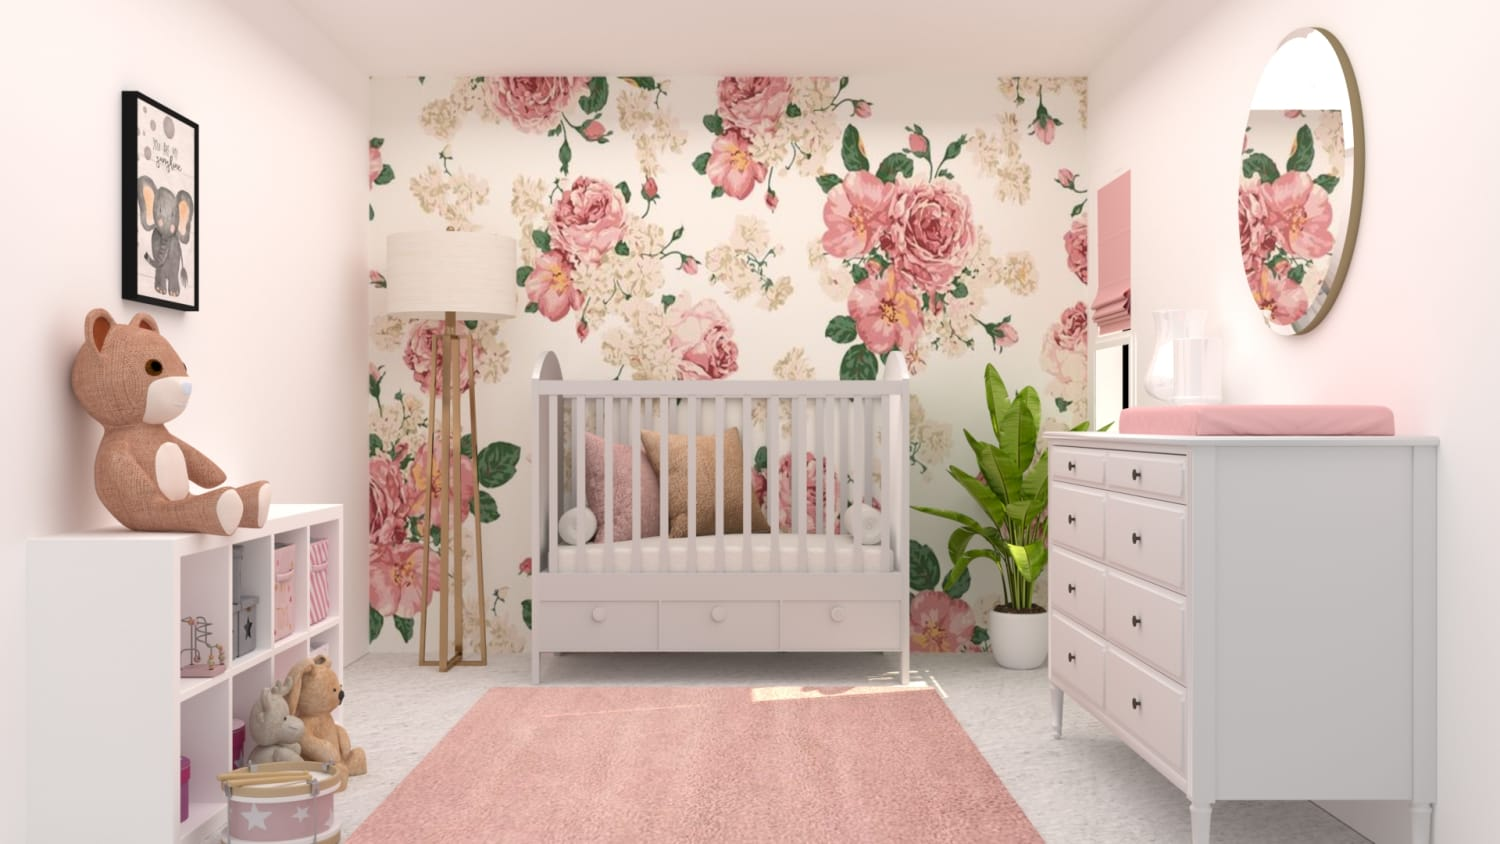 Blush Floral Nursery Design By Spacejoy